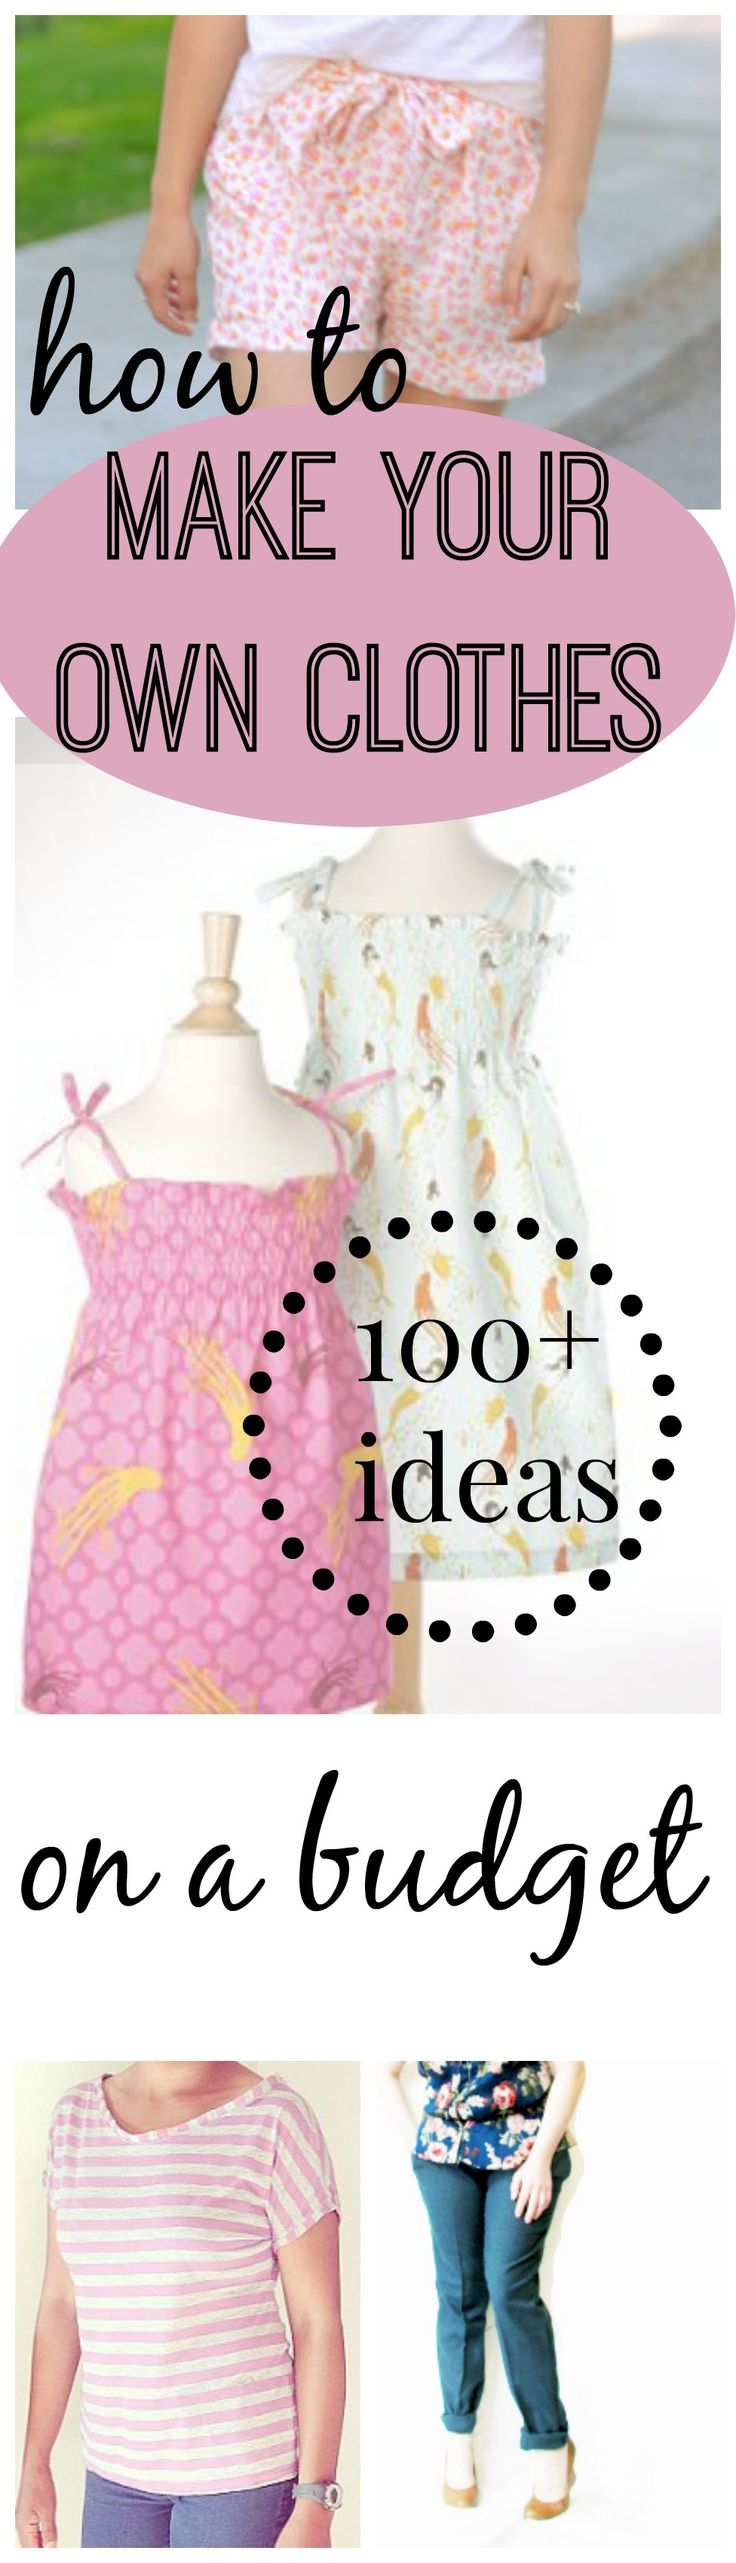 173 How to Sew Clothes Ideas: Tips for Making Your Own Clothes on the Cheap | AllFreeSewing.com